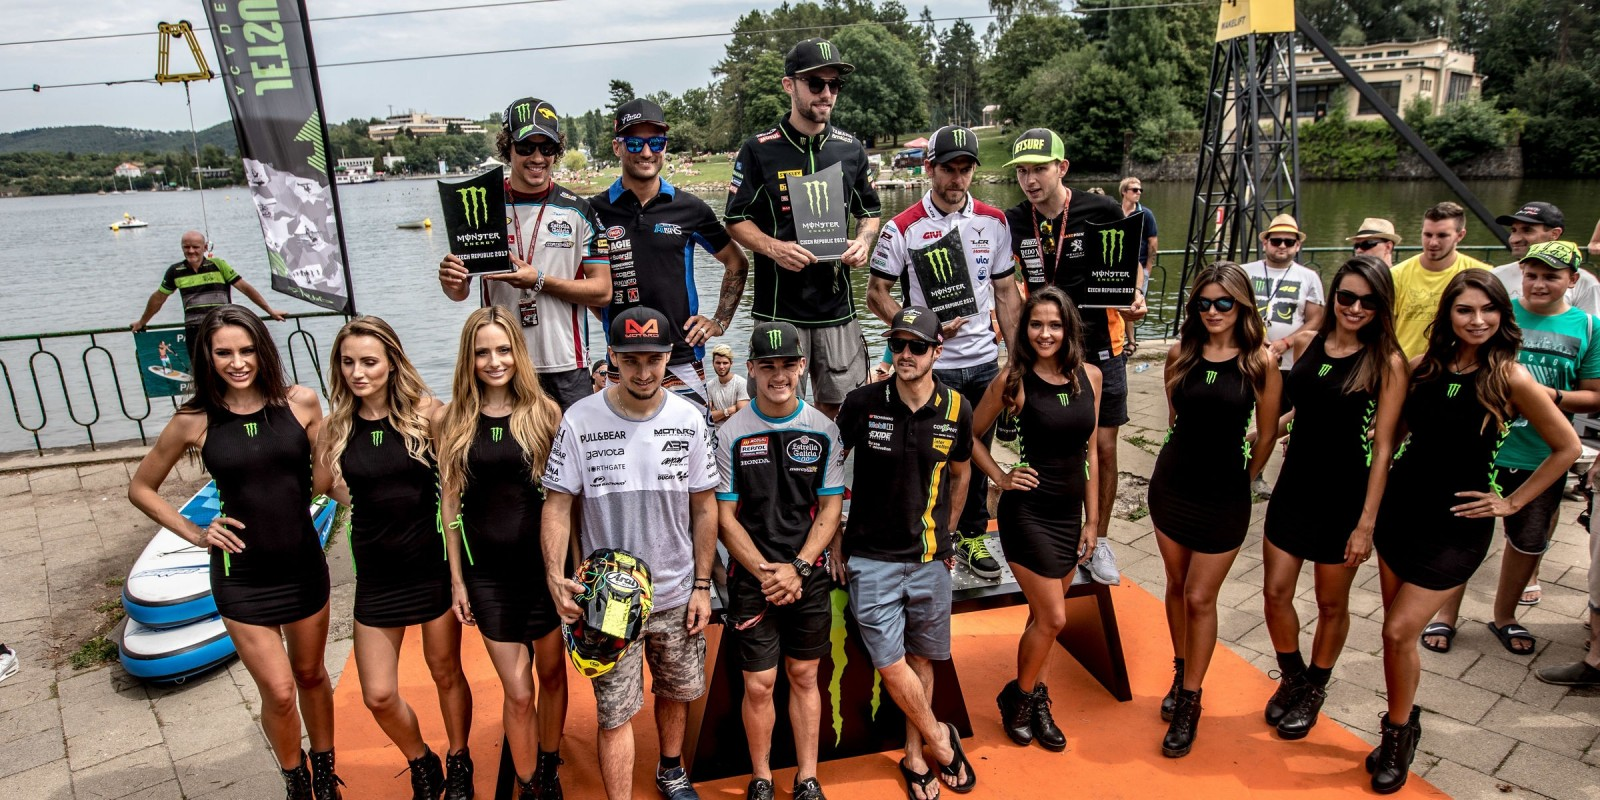 Behind the scenes at the 2017 Grand Prix of Czech Republic